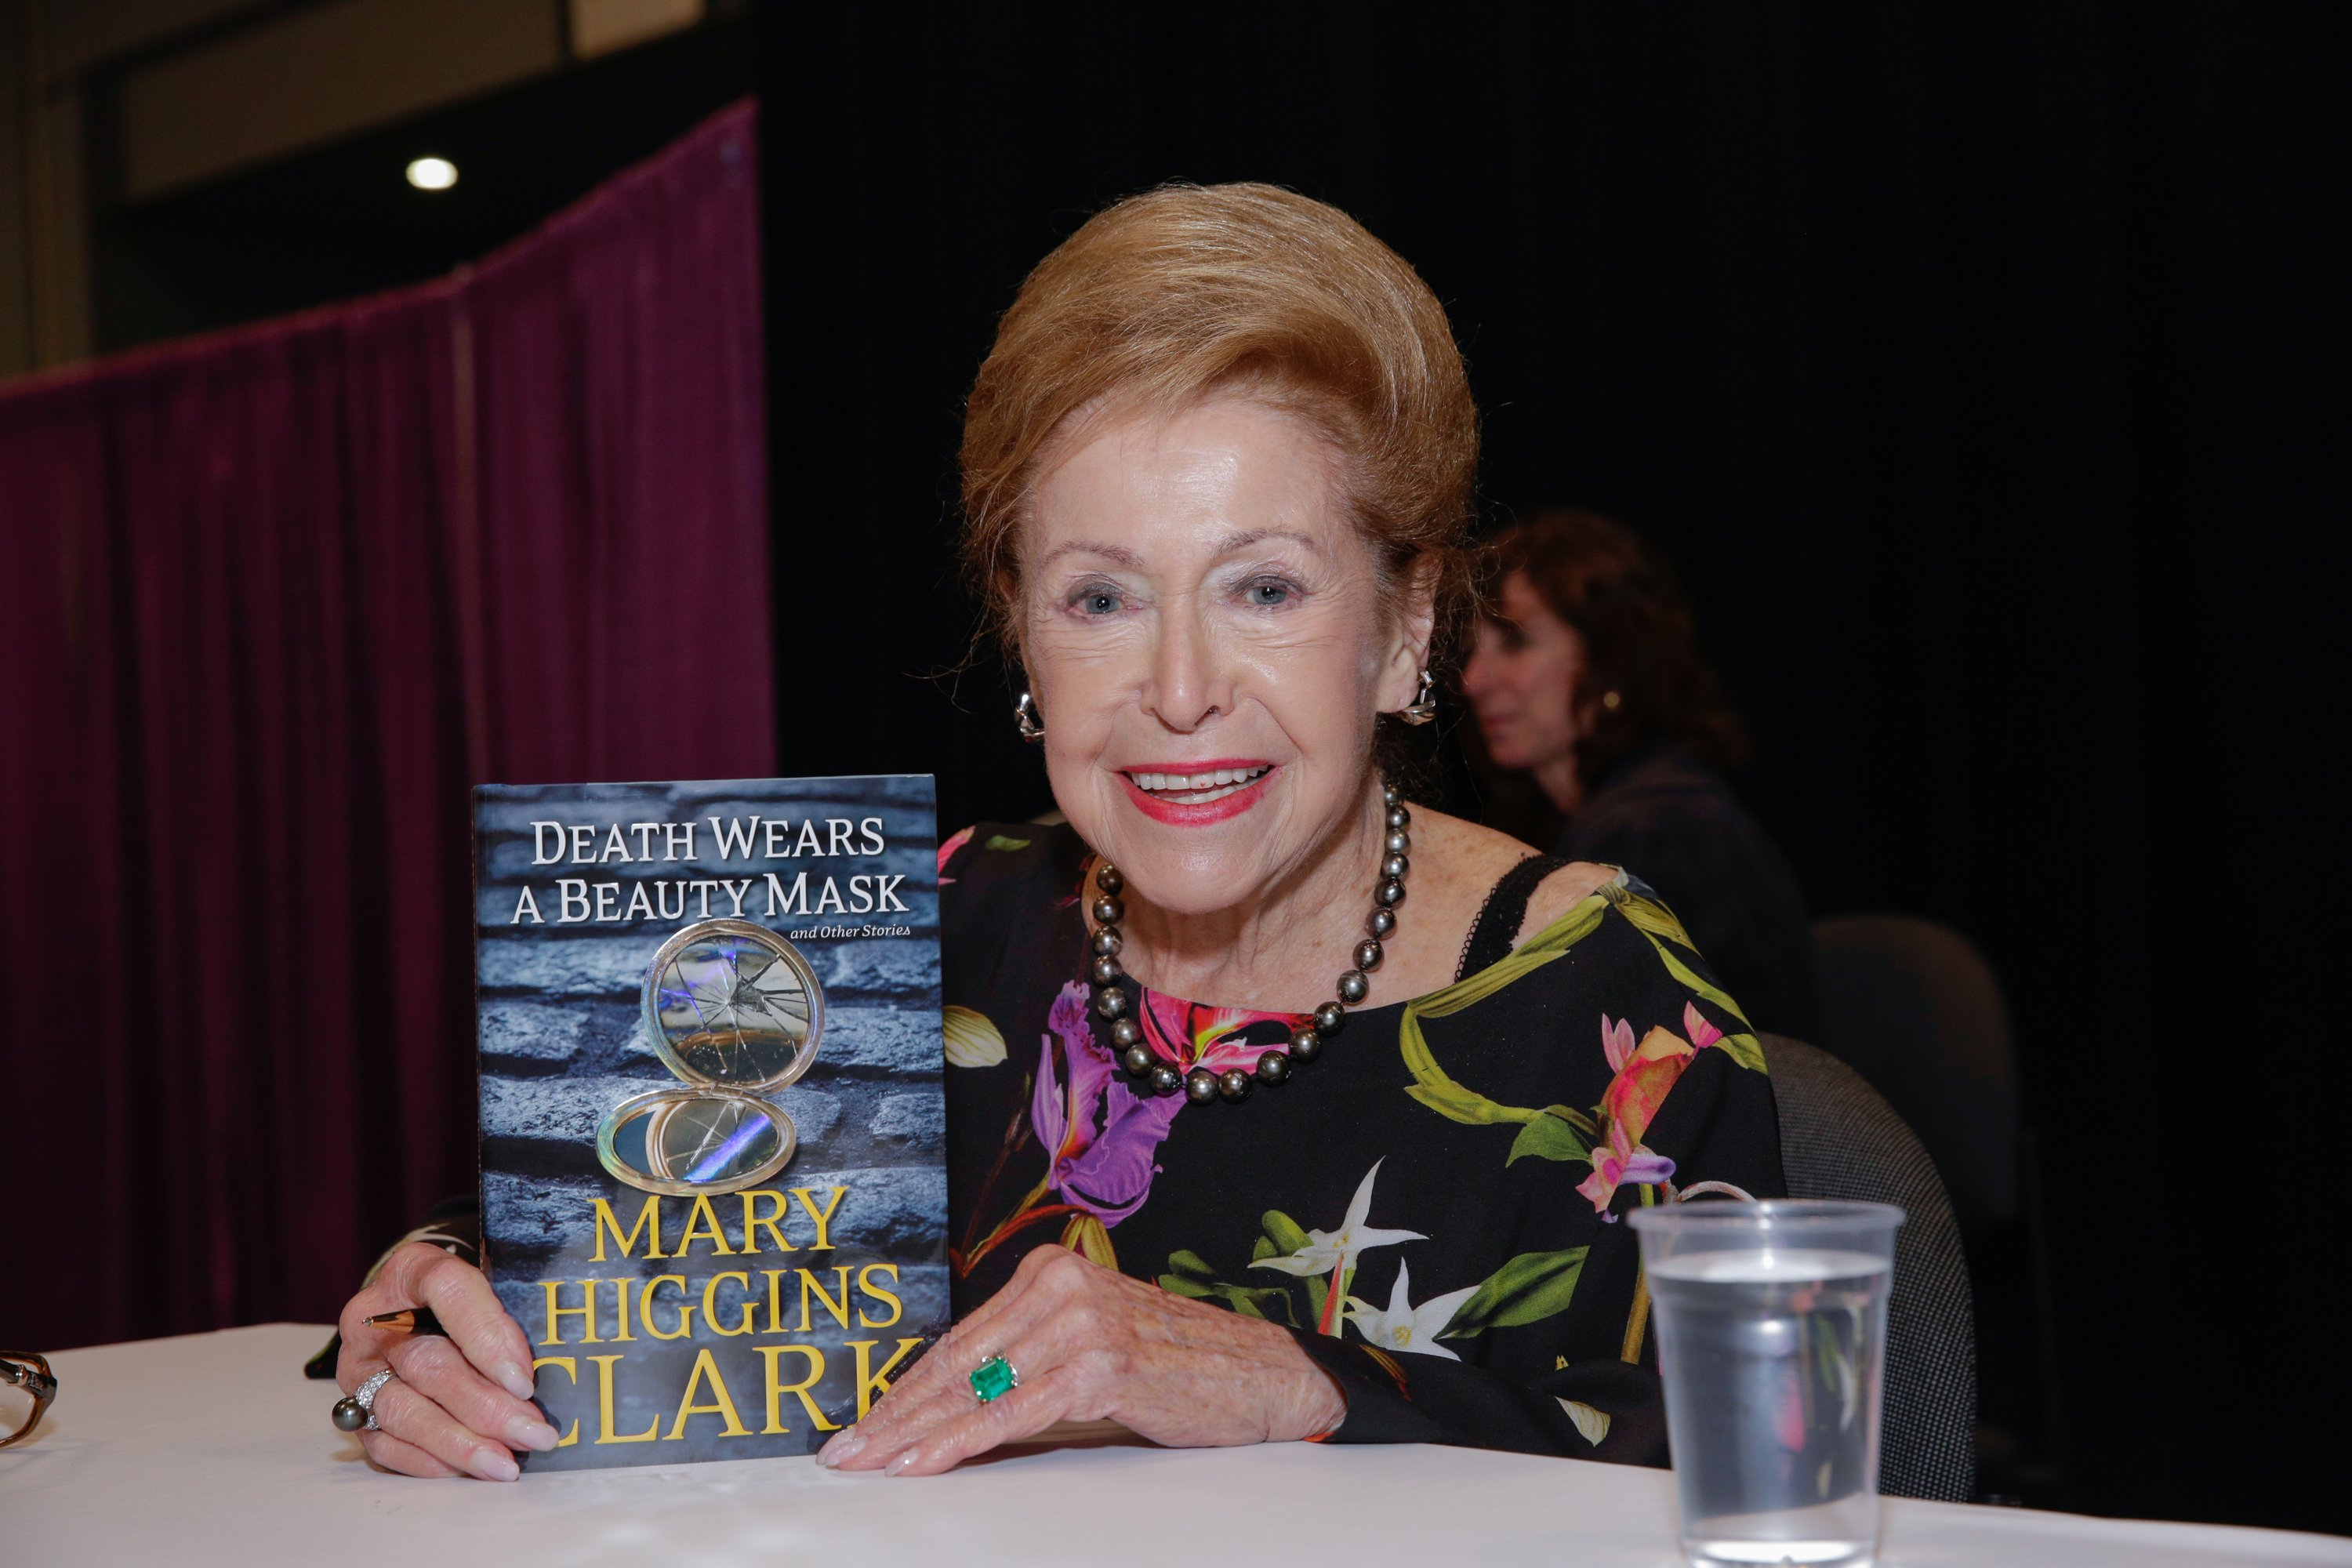 Mary Higgins Clark posing for photographs with her book during BookExpo America at the Javits Center in New York City | Photo: Brent N. Clarke/FilmMagic via Getty Images